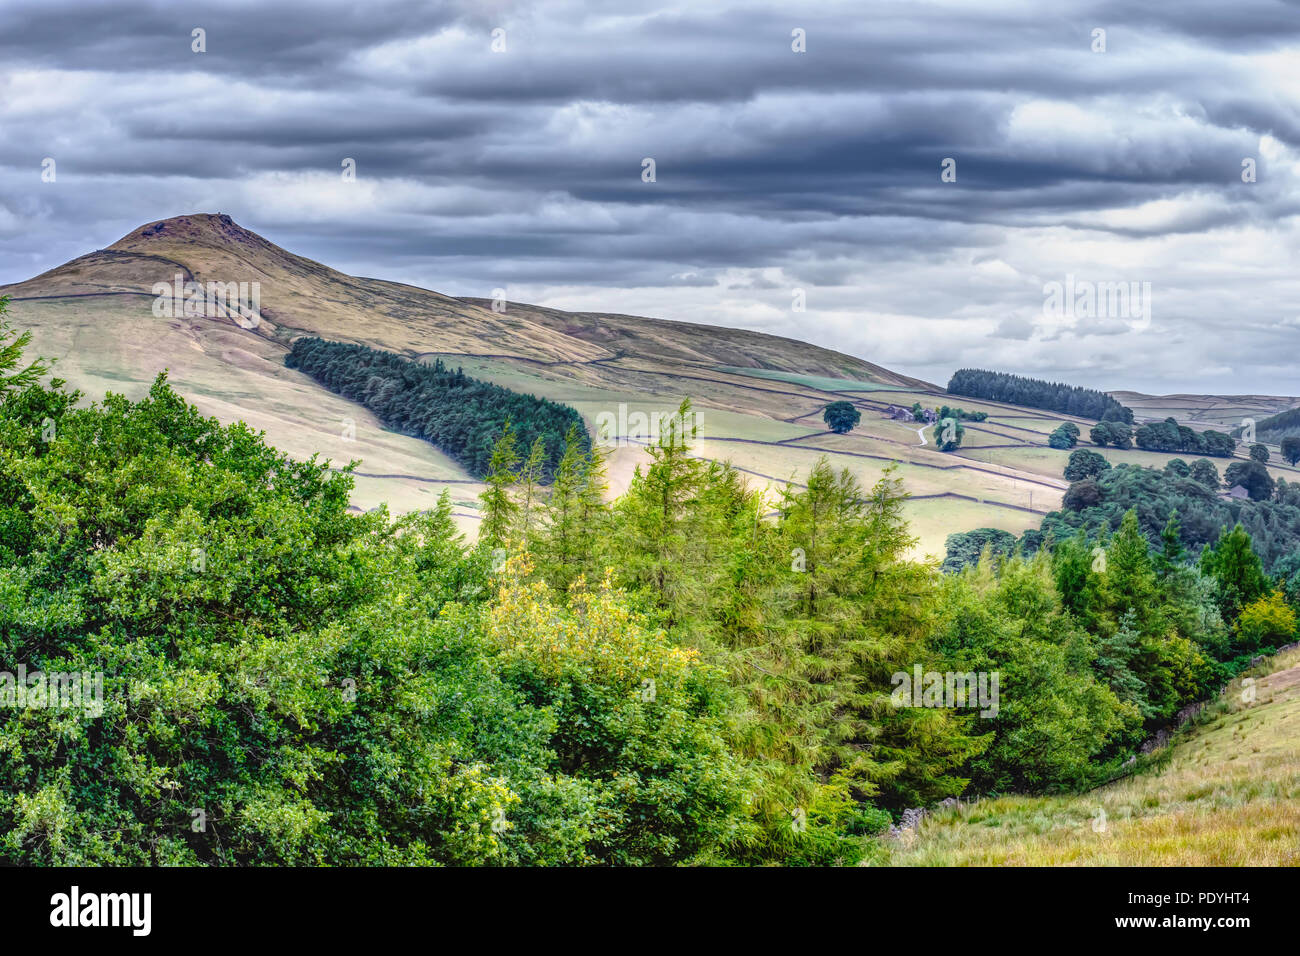 Idyllic landscape of Peak District National Park, Derbyshire, Uk.Scenic view on mountain valley with trees in foreground and summit in background. - Stock Image